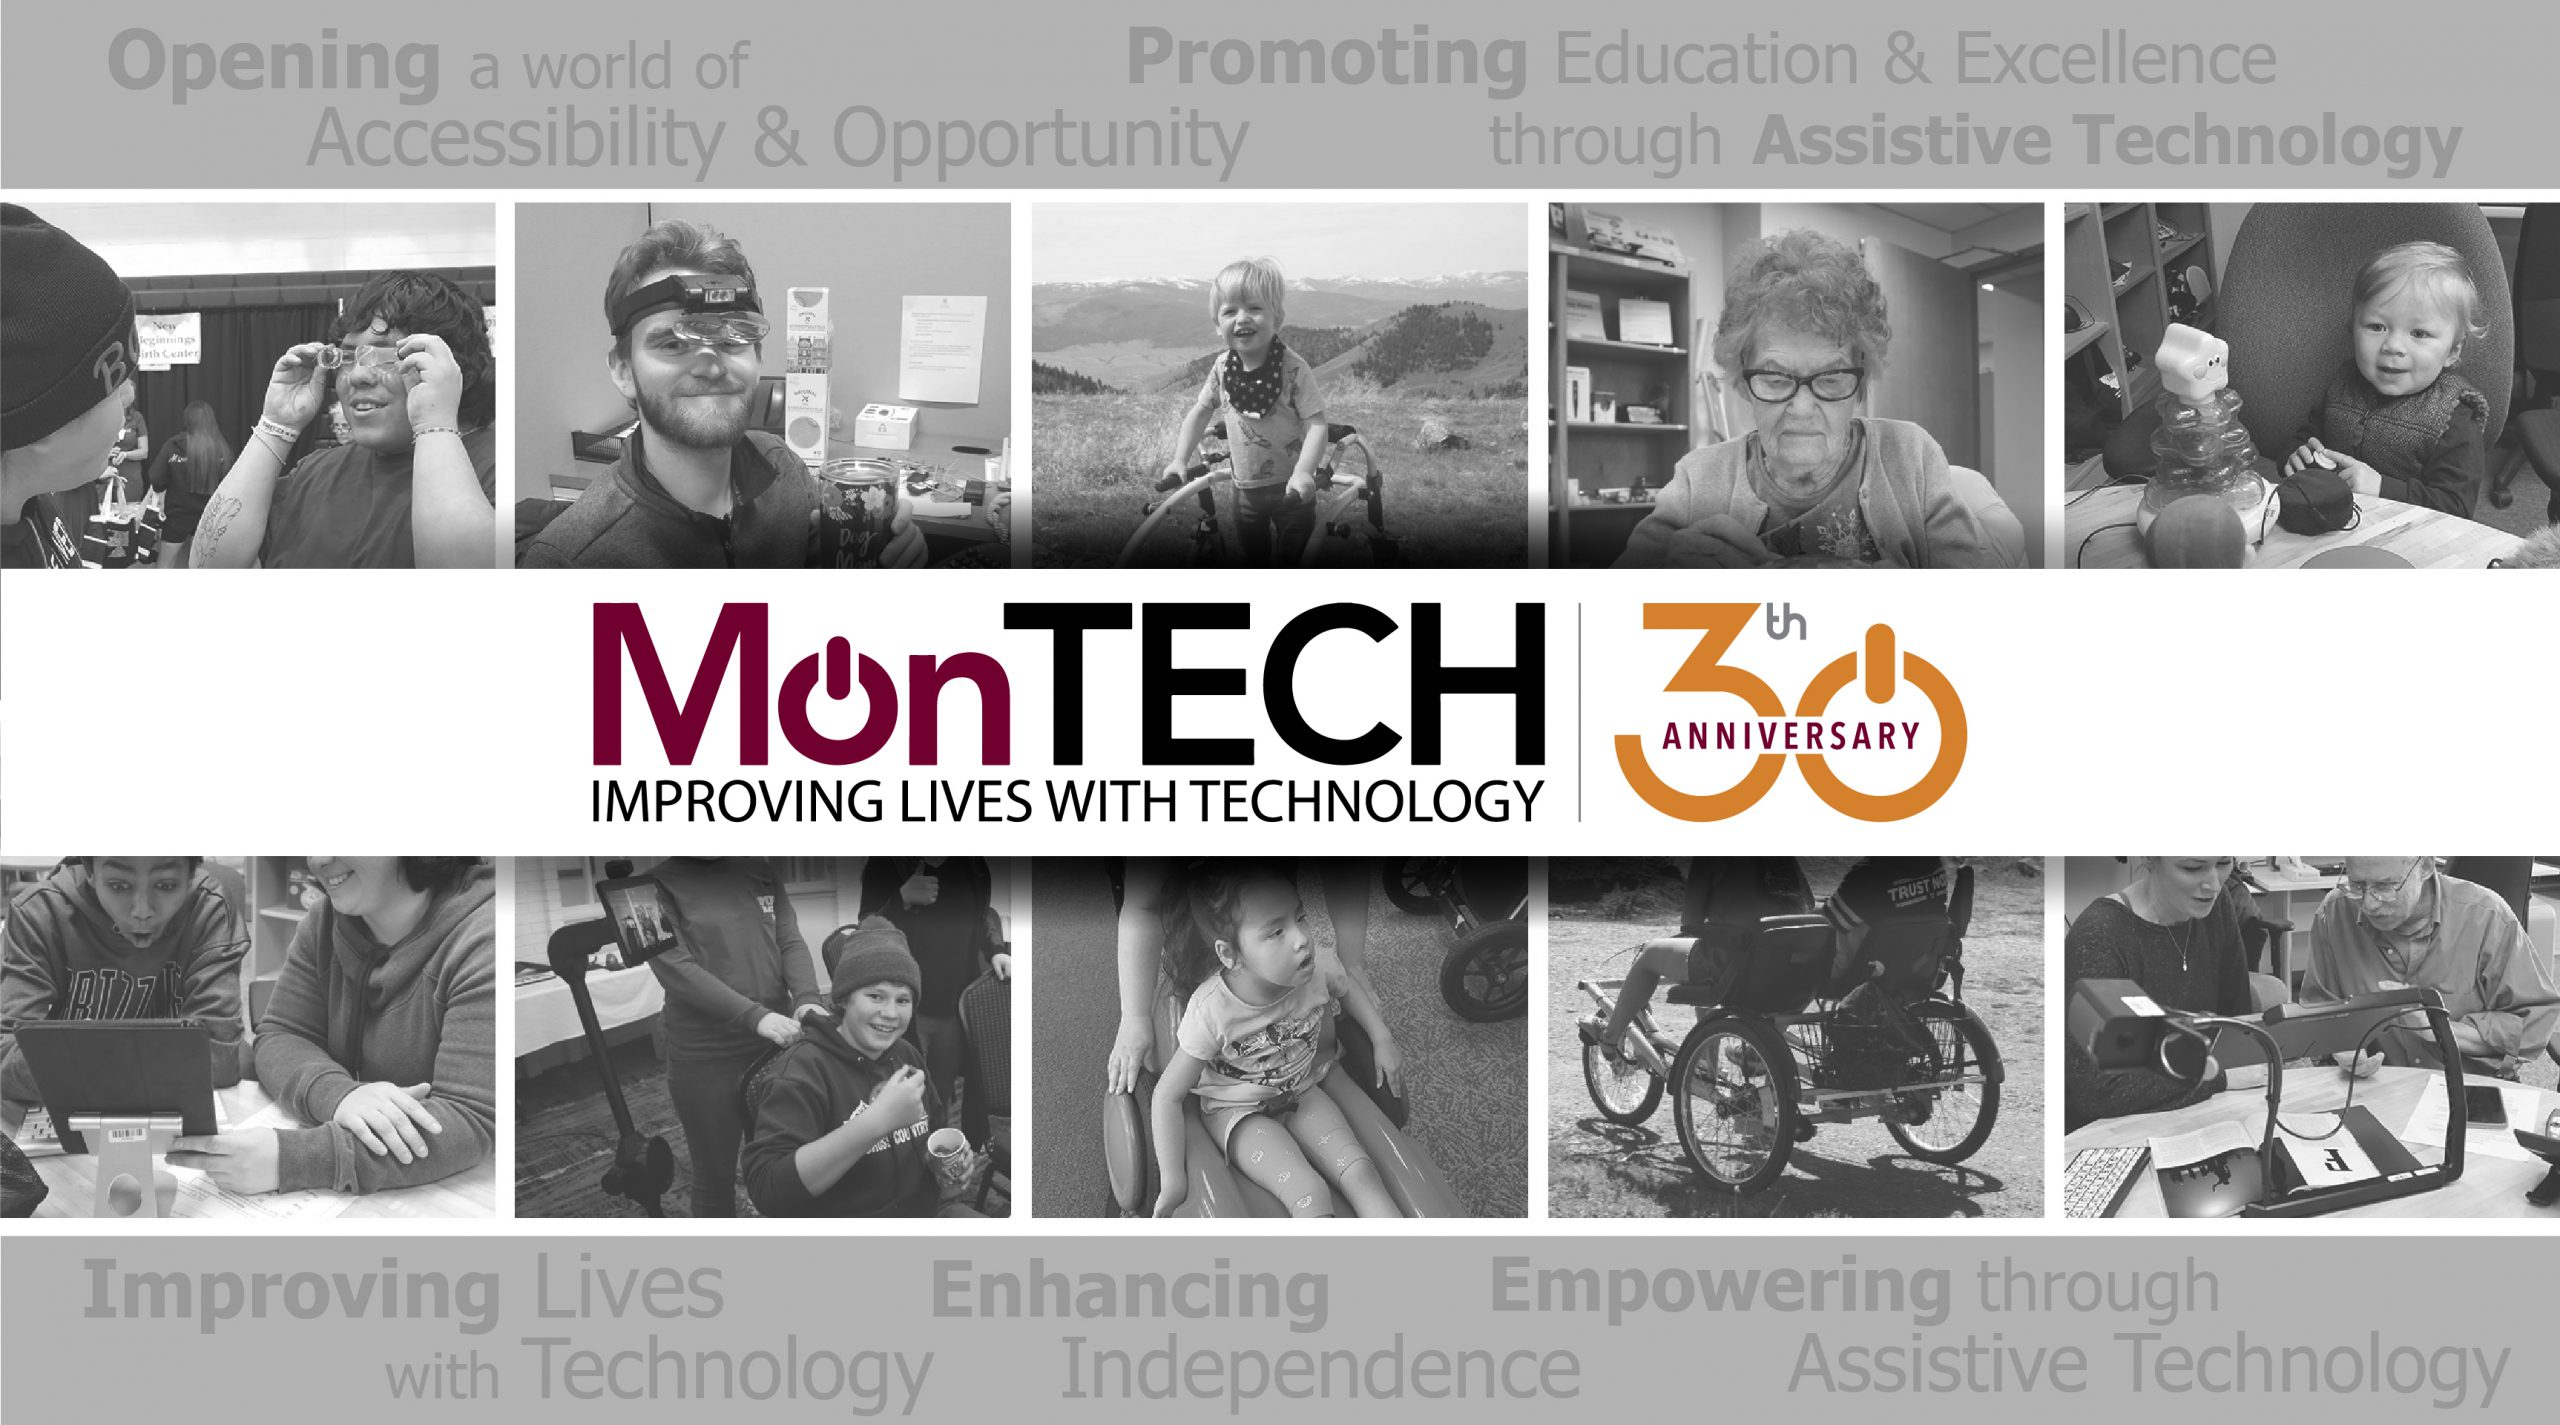 MonTECH 30th Anniversary logo with collage of MonTECH consumers